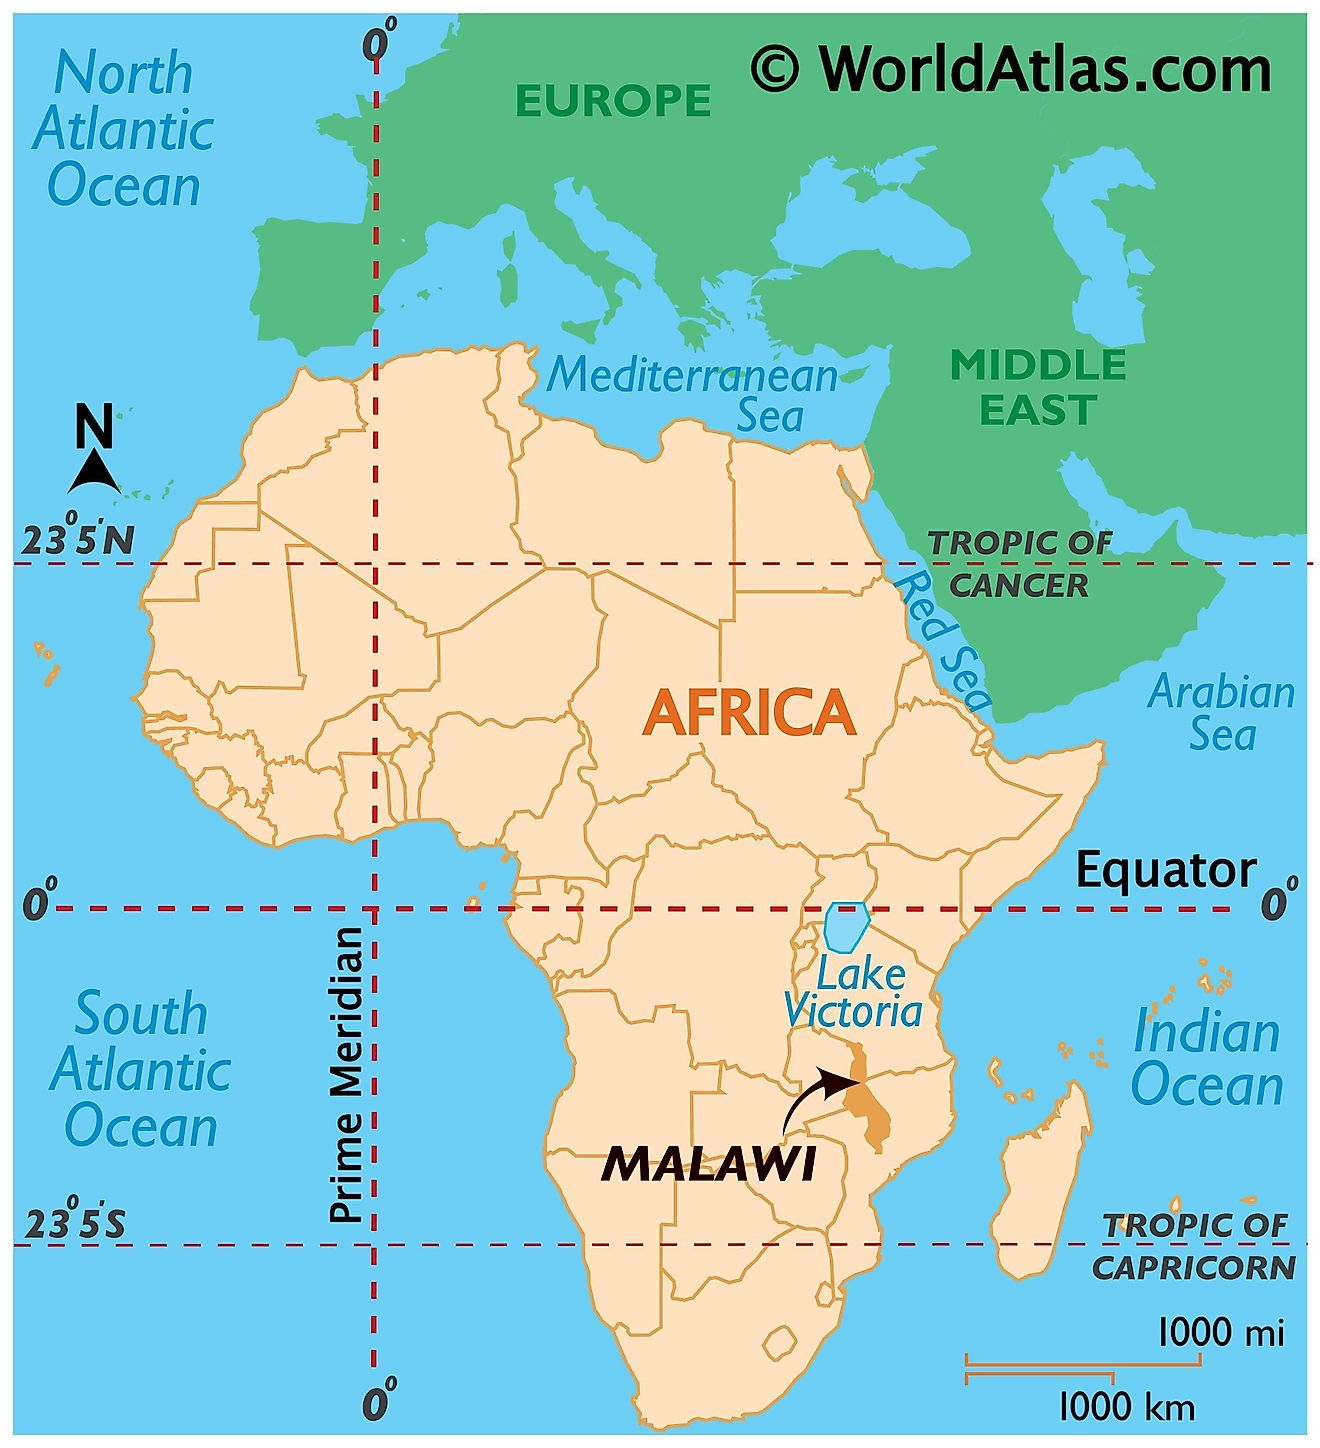 Map showing location of Malawi in the world.